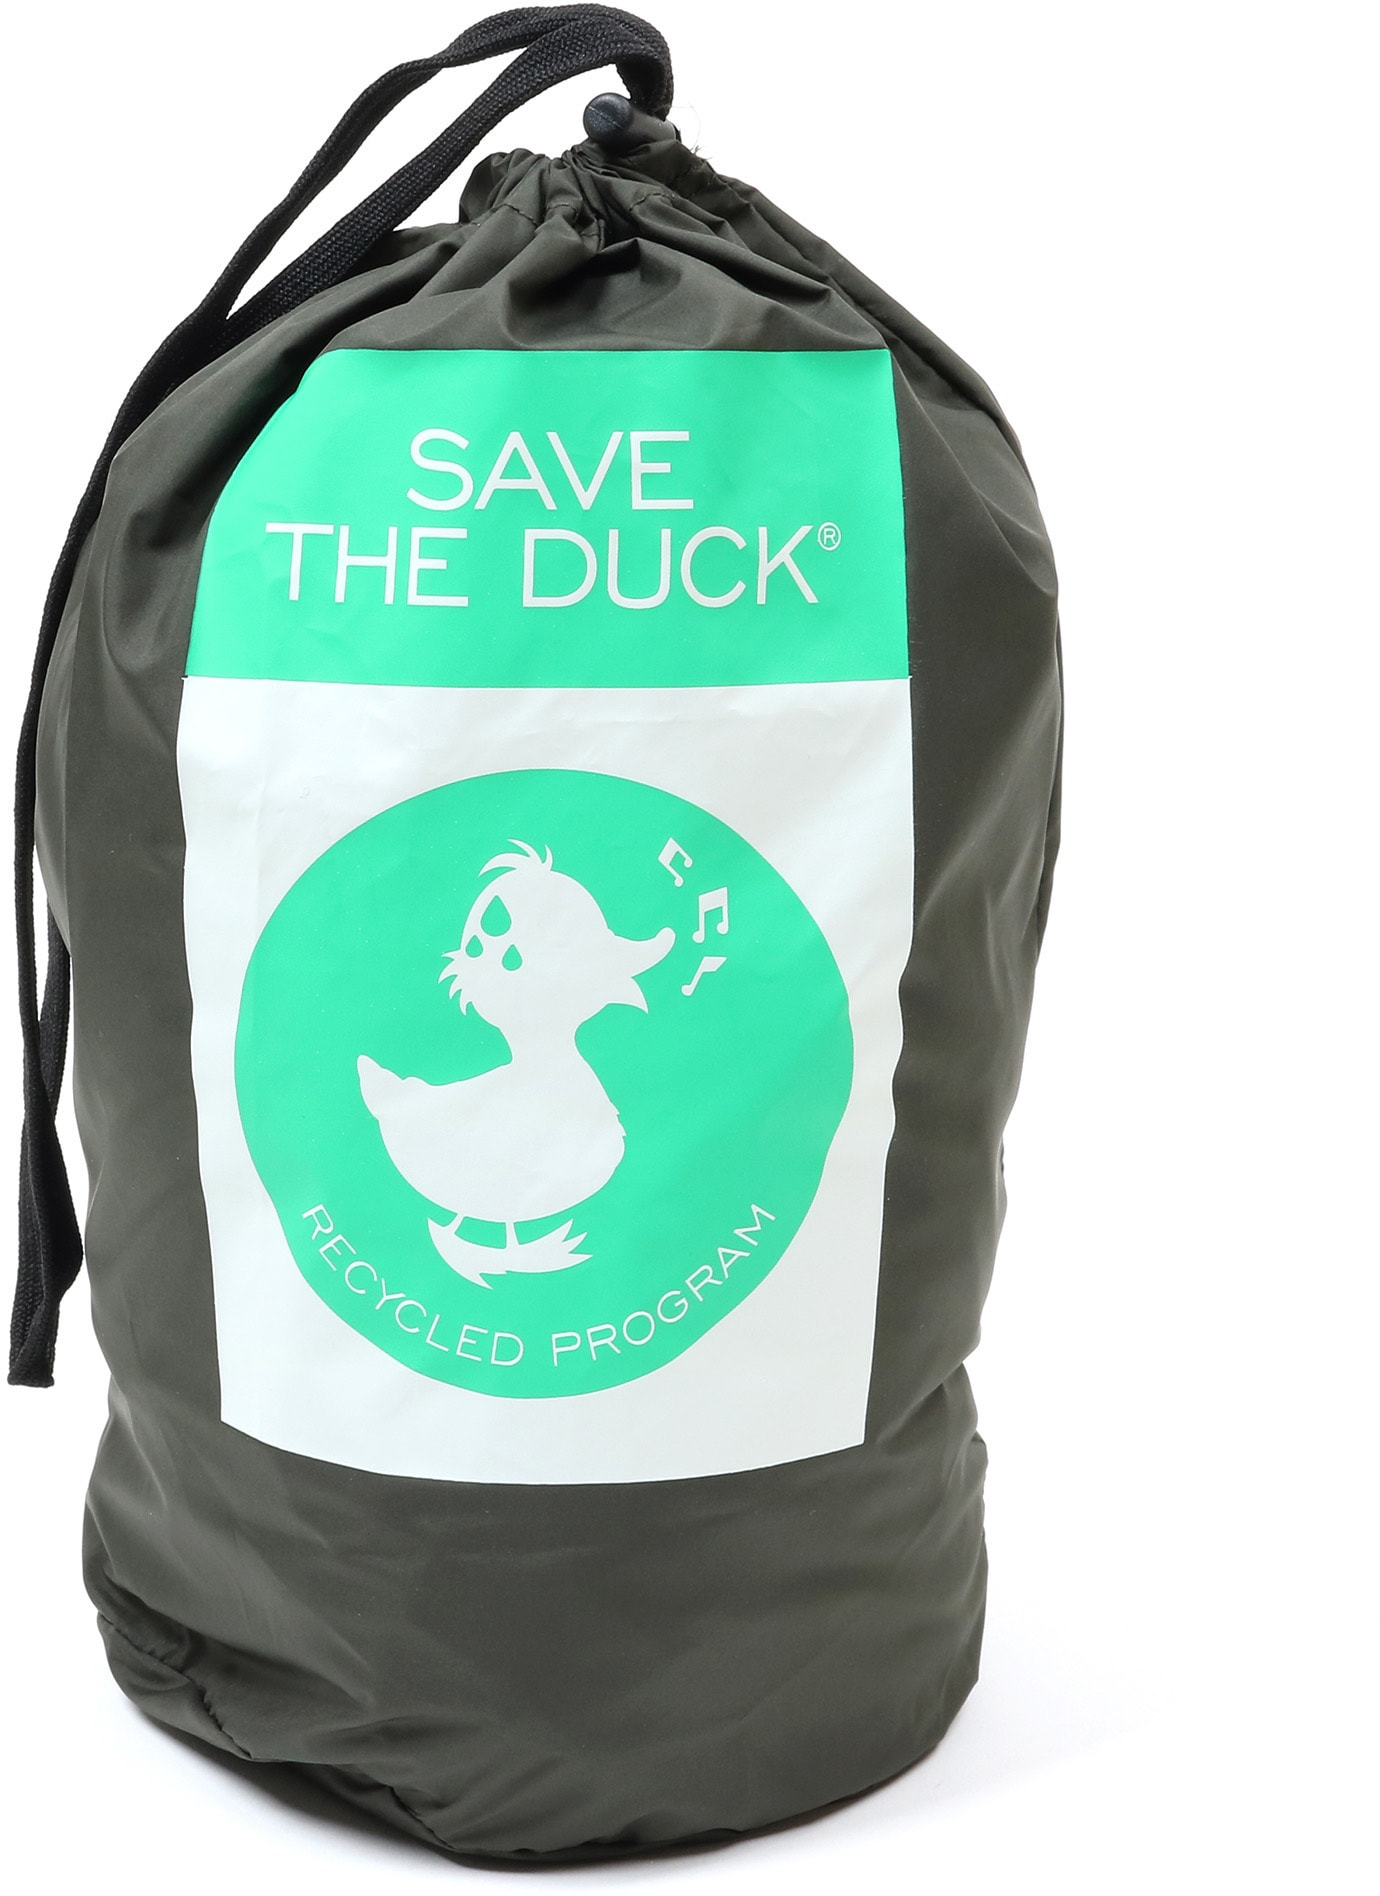 Save the Duck Jas Recy6 Groen foto 7